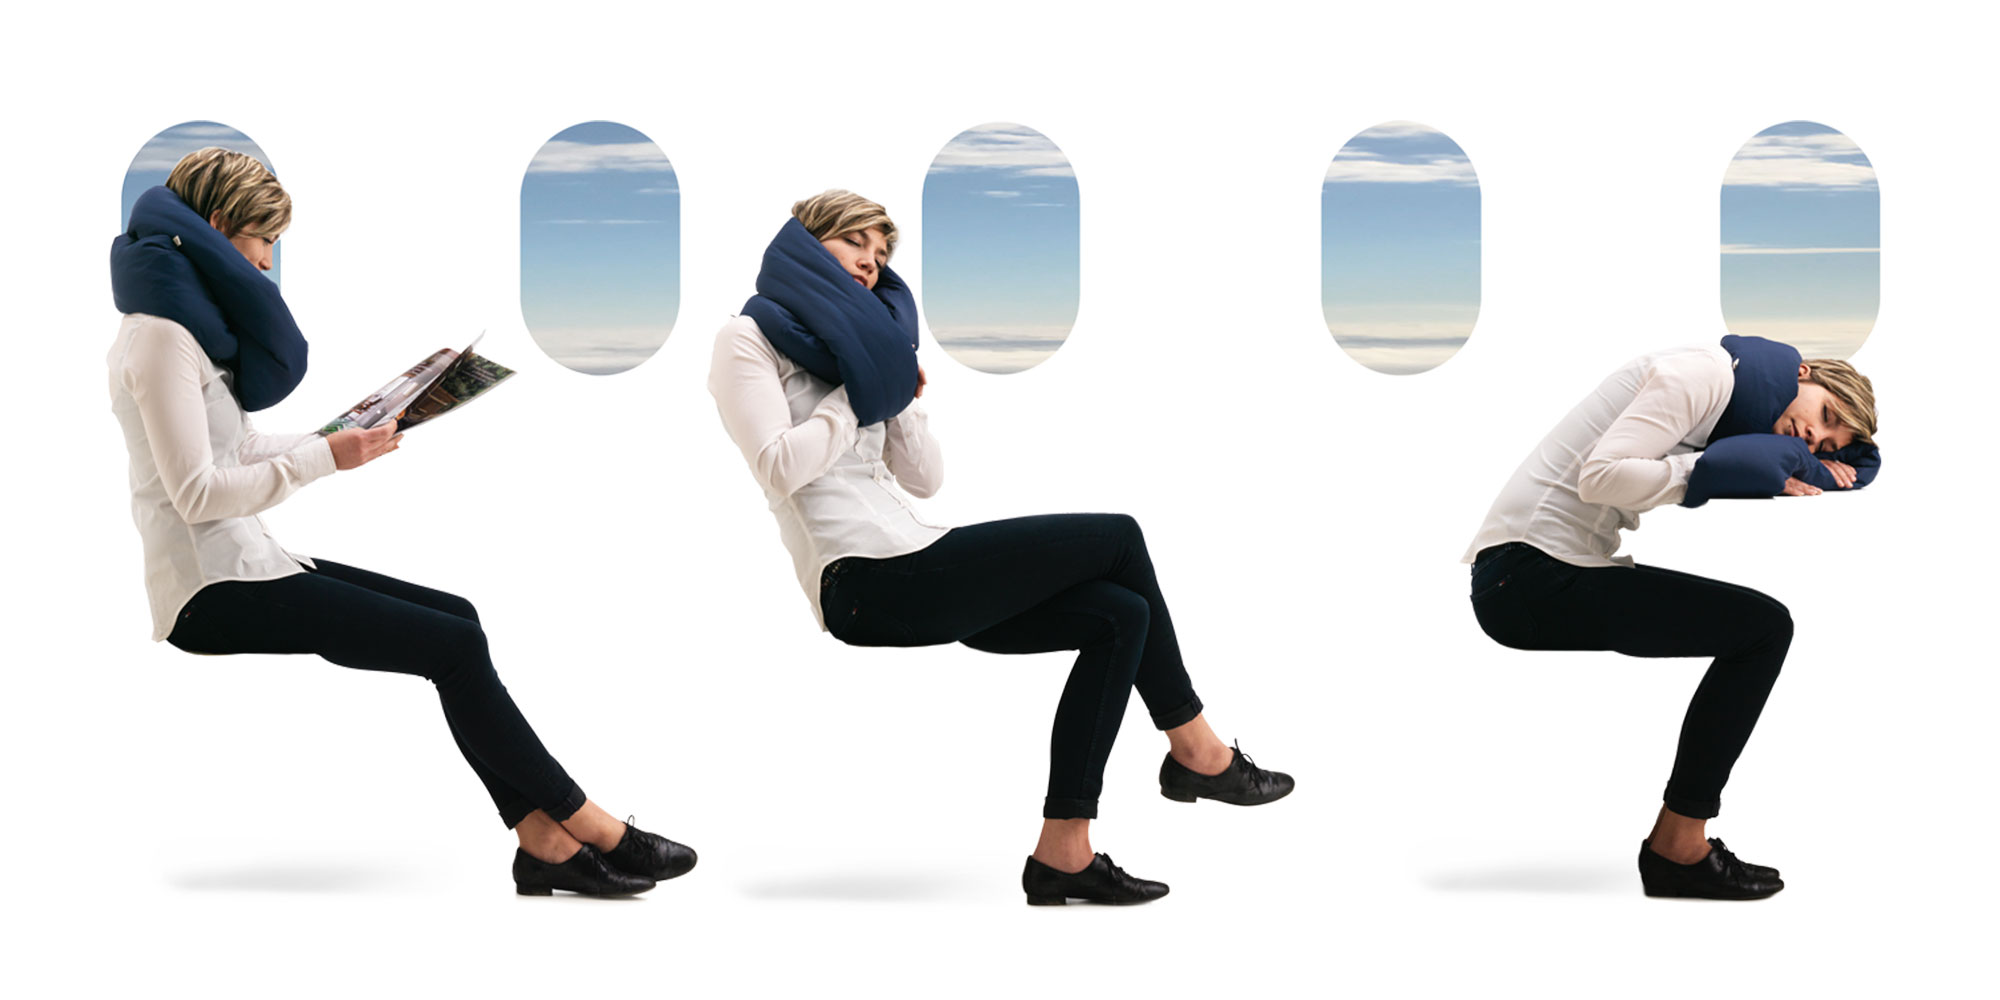 sleep positions on planes with infinity travel pillow